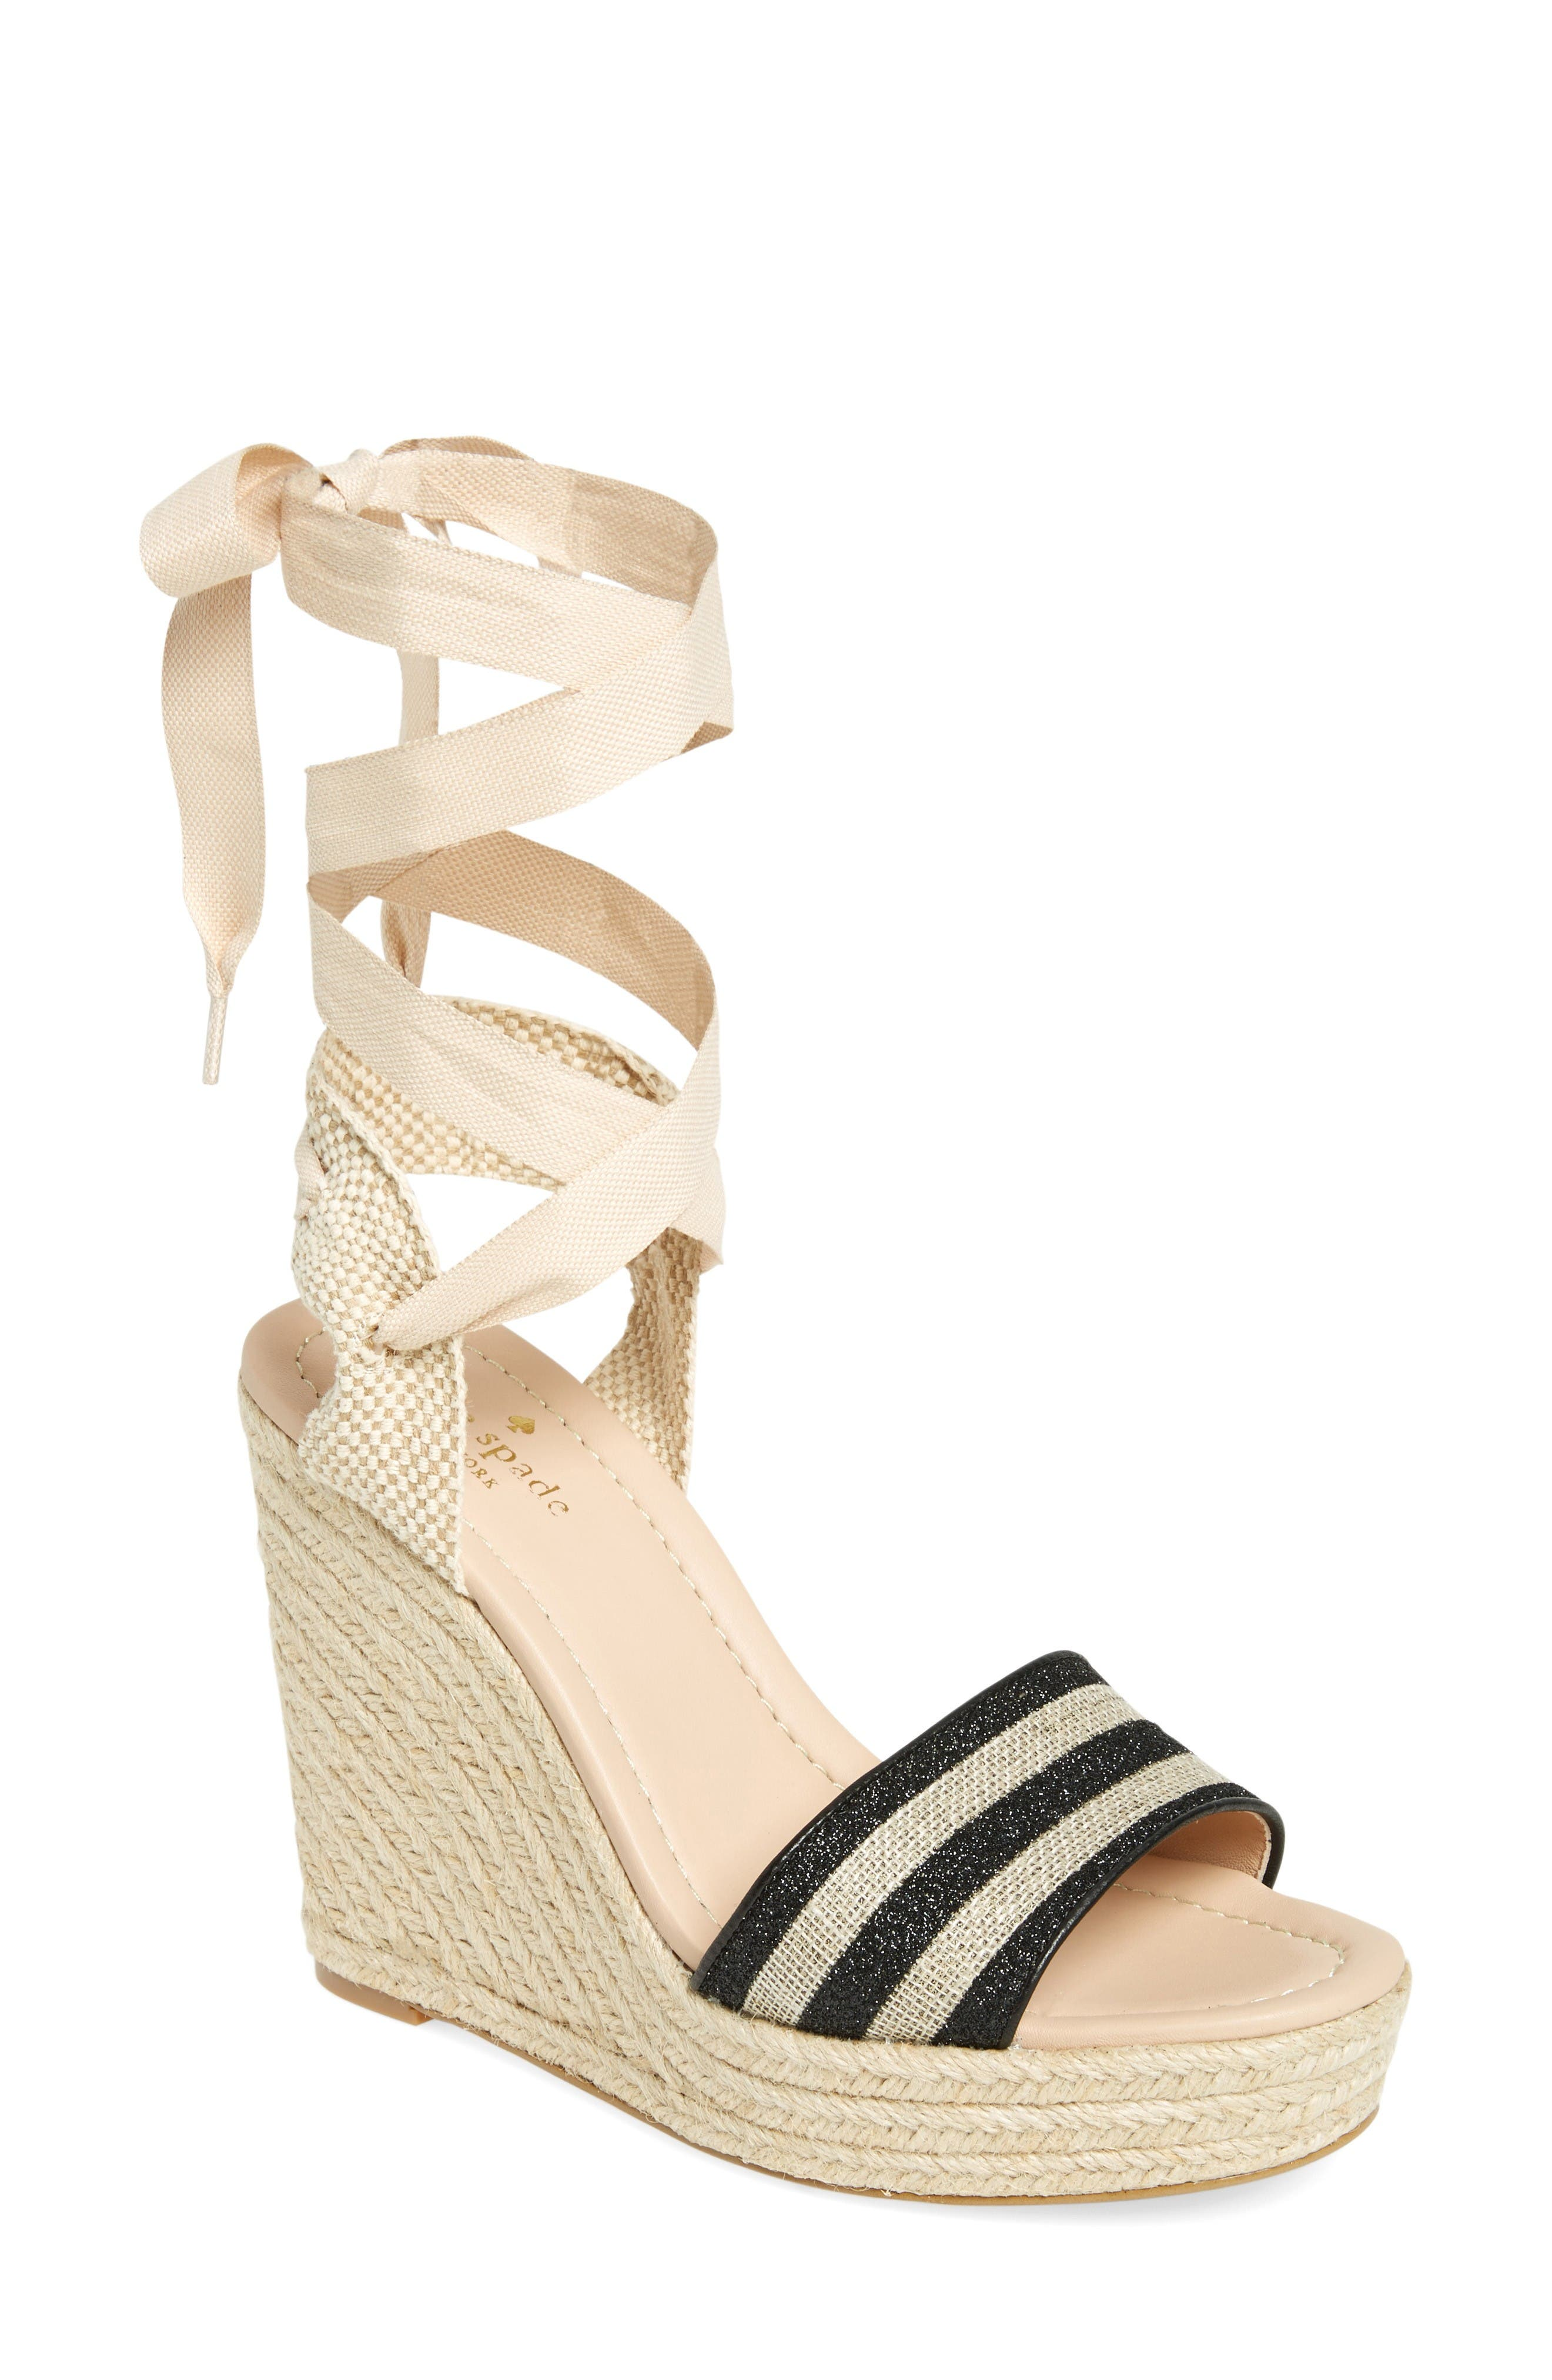 kate spade new york delano wedge sandal (Women)